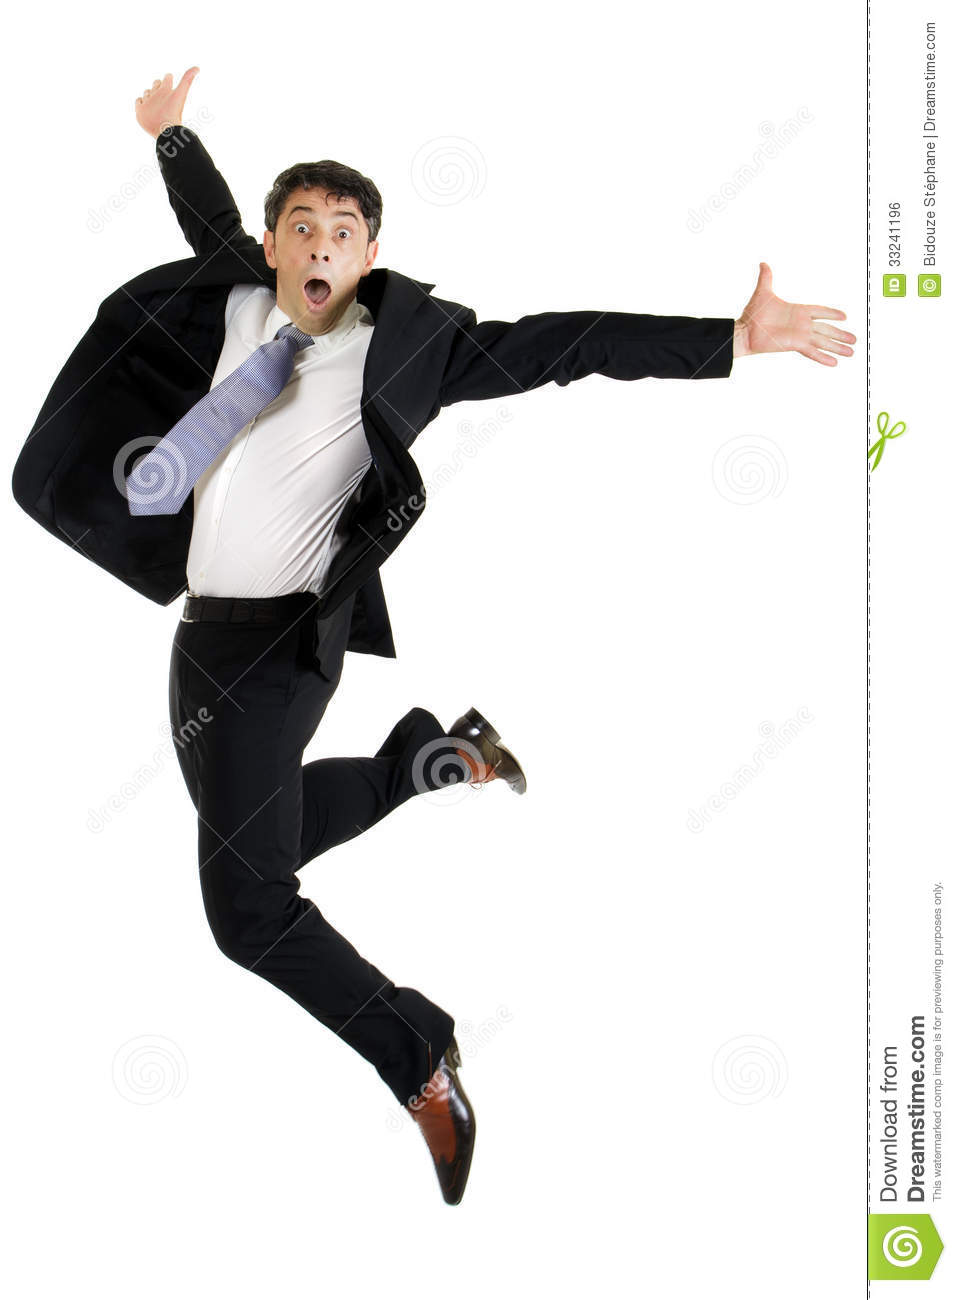 Free Stock Photo: Agile Businessman Leaping Royalty Free Stock Image